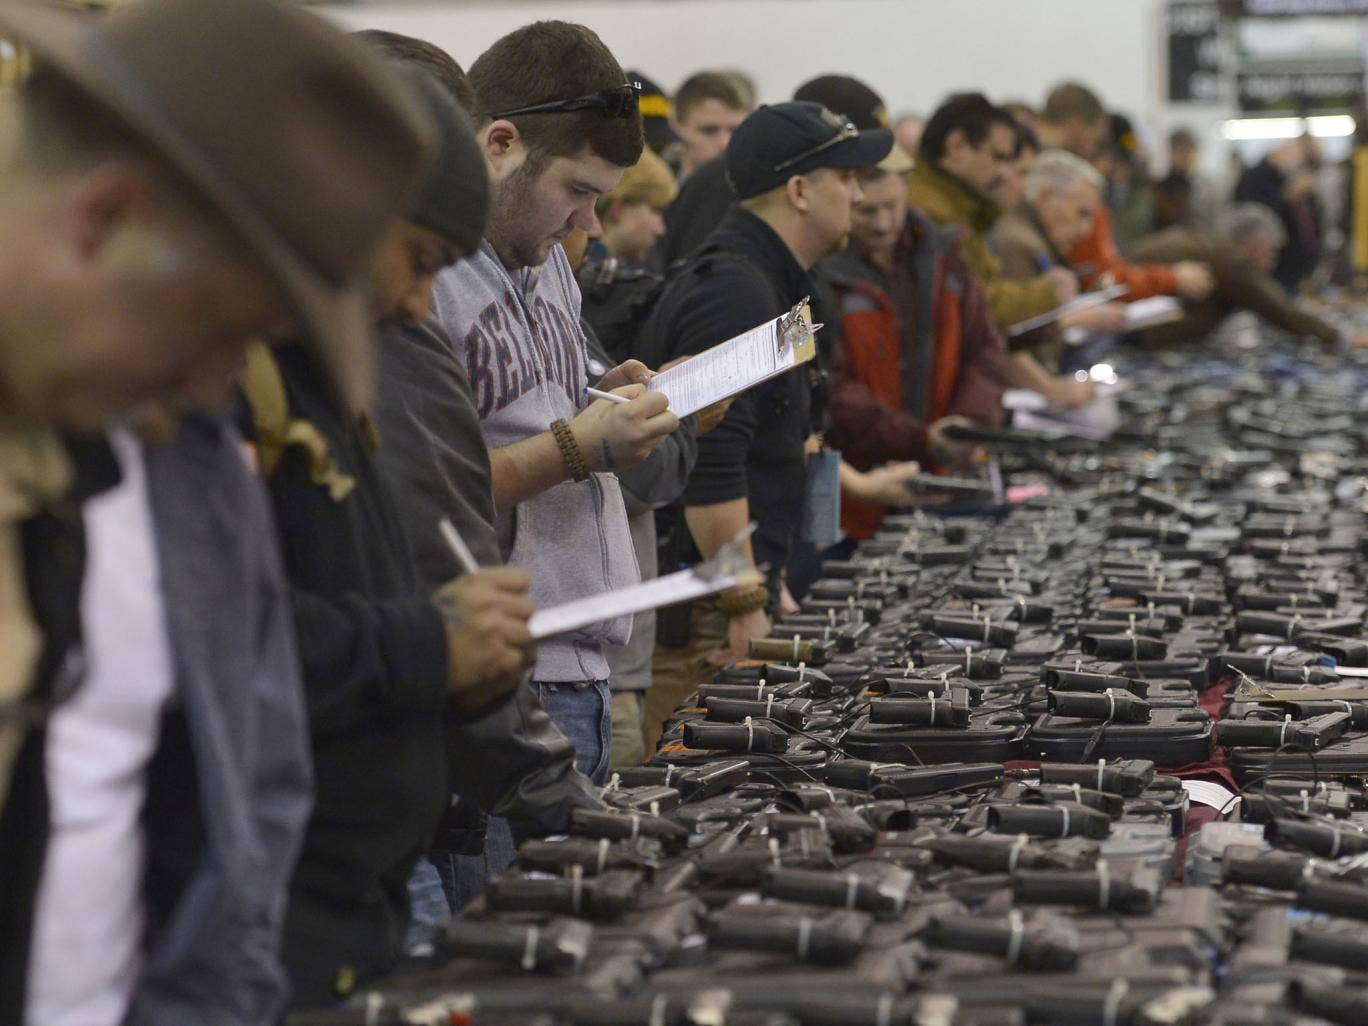 Gun enthusiasts fill out their background check paperwork while shopping for handguns at the Nation's Gun Show at the Dulles Expo Center in Chantilly, Virginia.